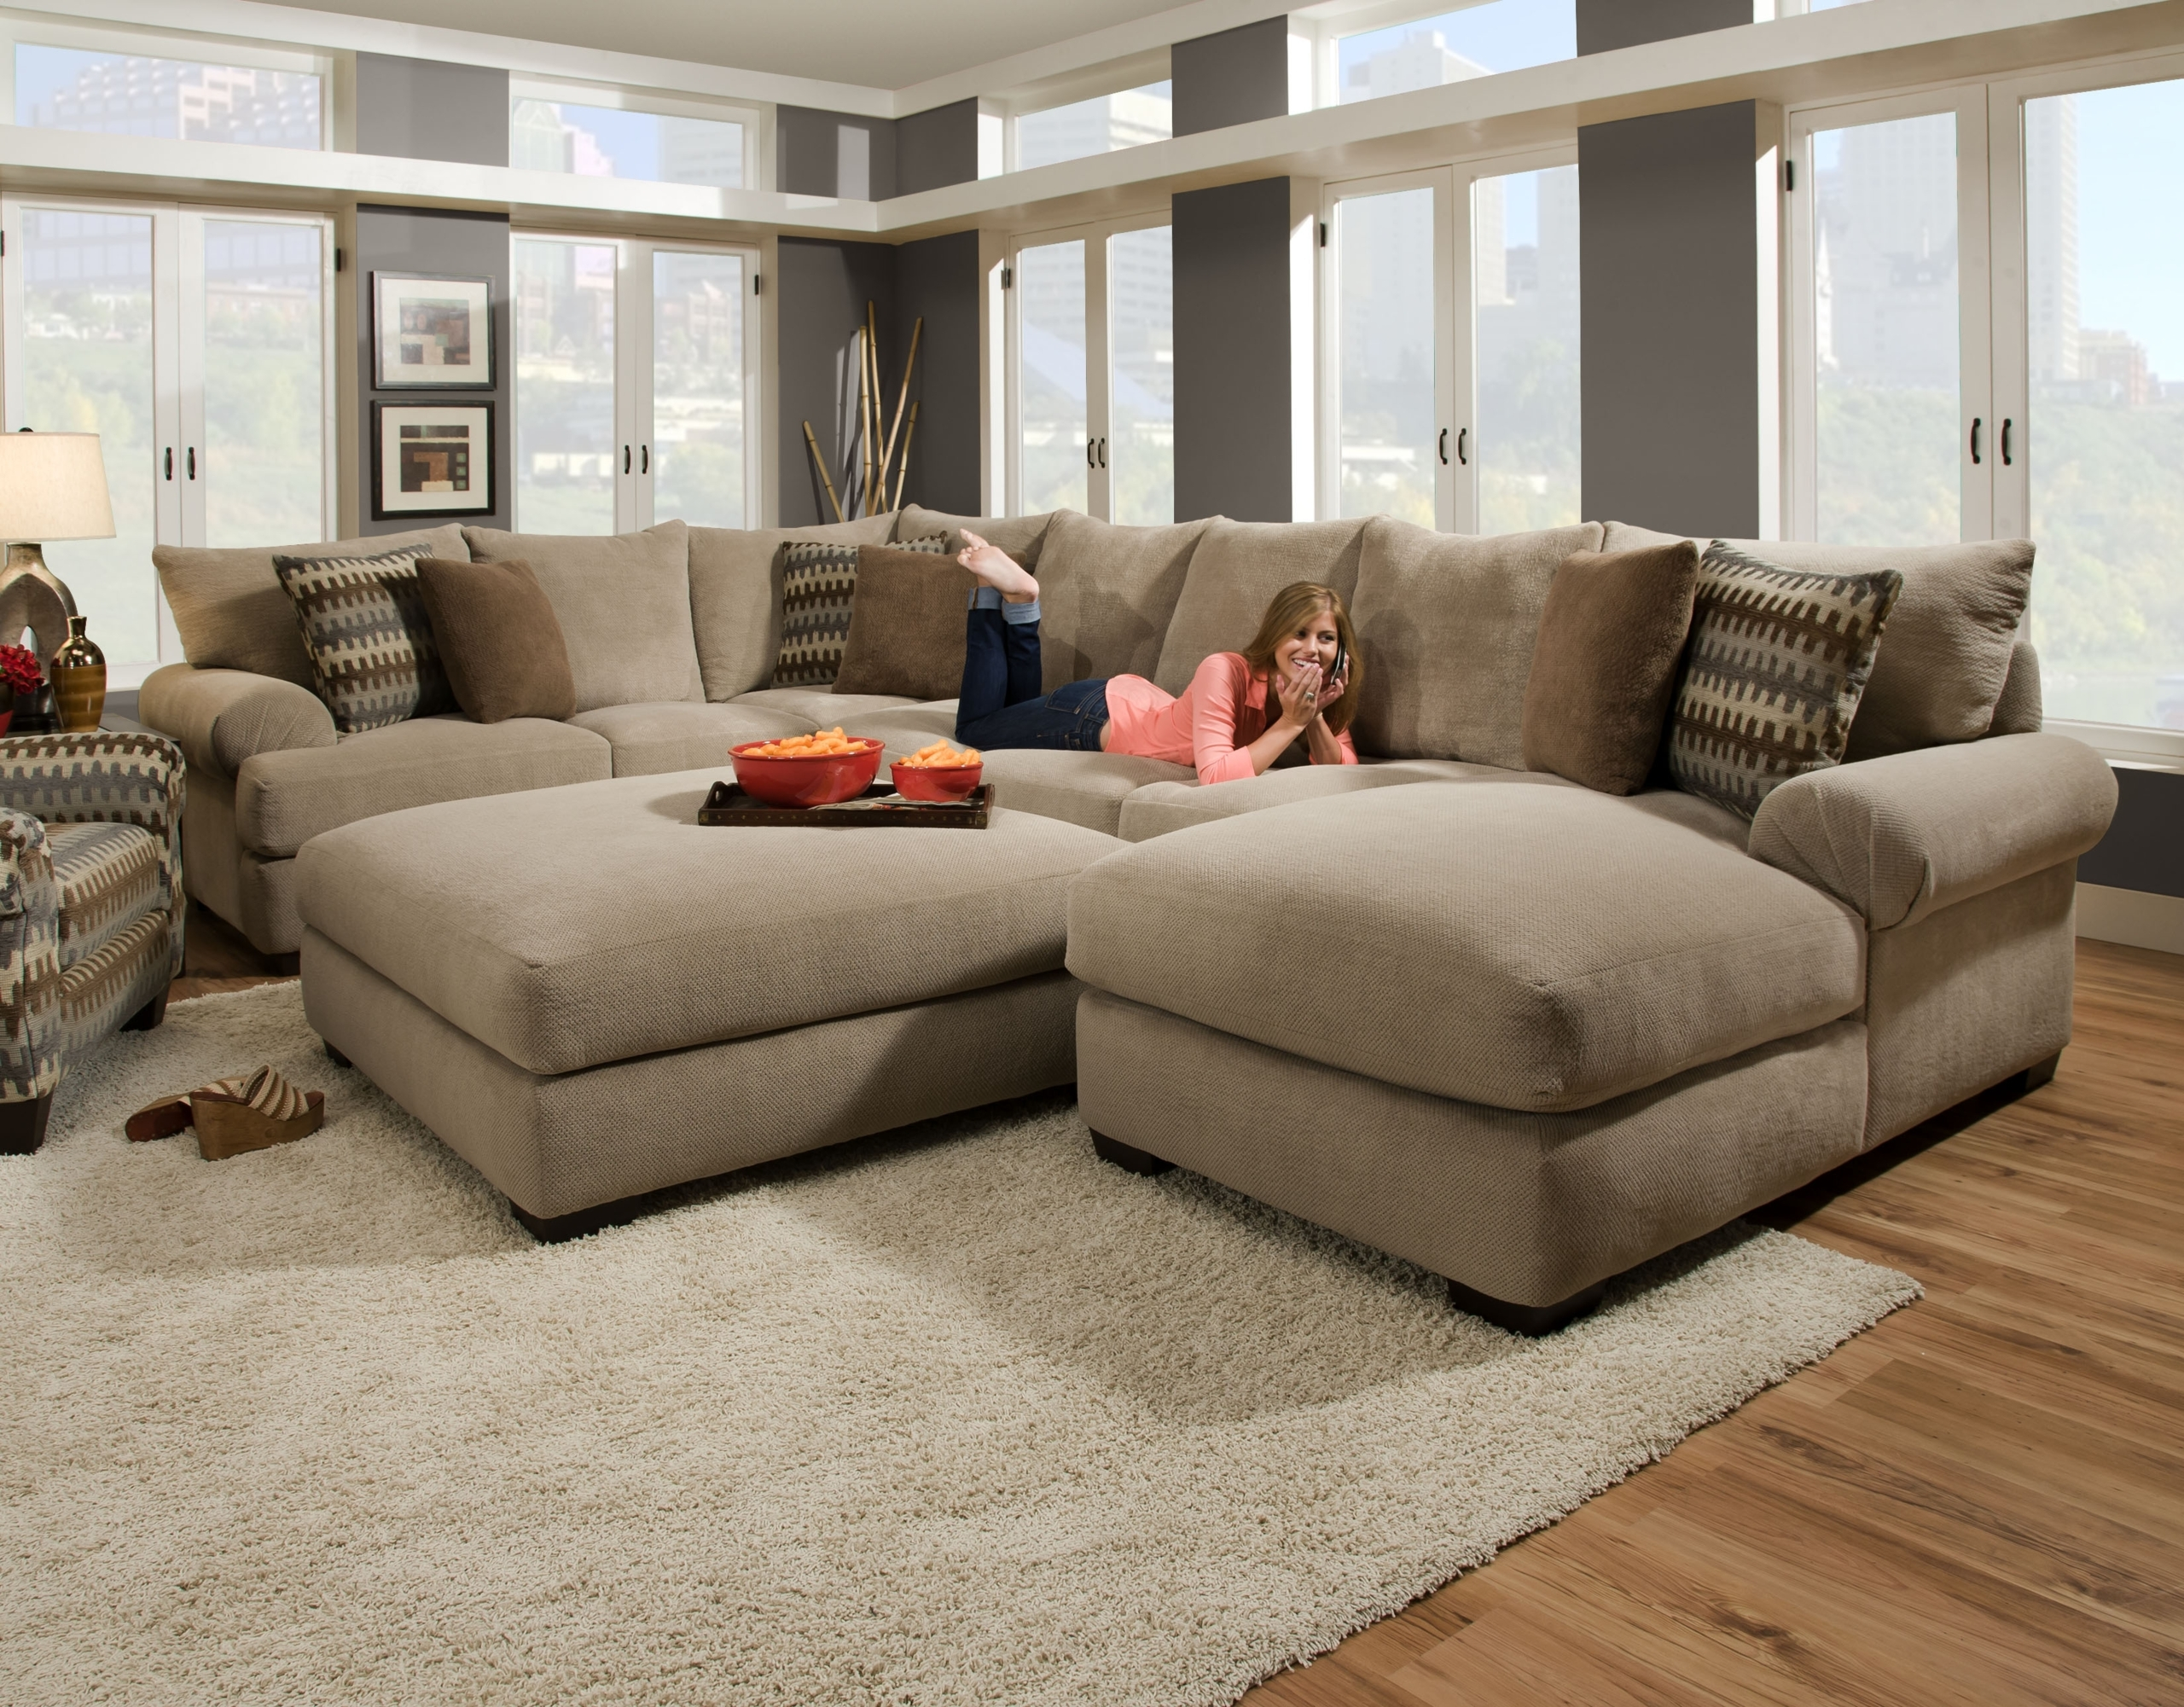 Extra Large Sectional Sofa With Chaise | SOFAS U0026 FUTONS